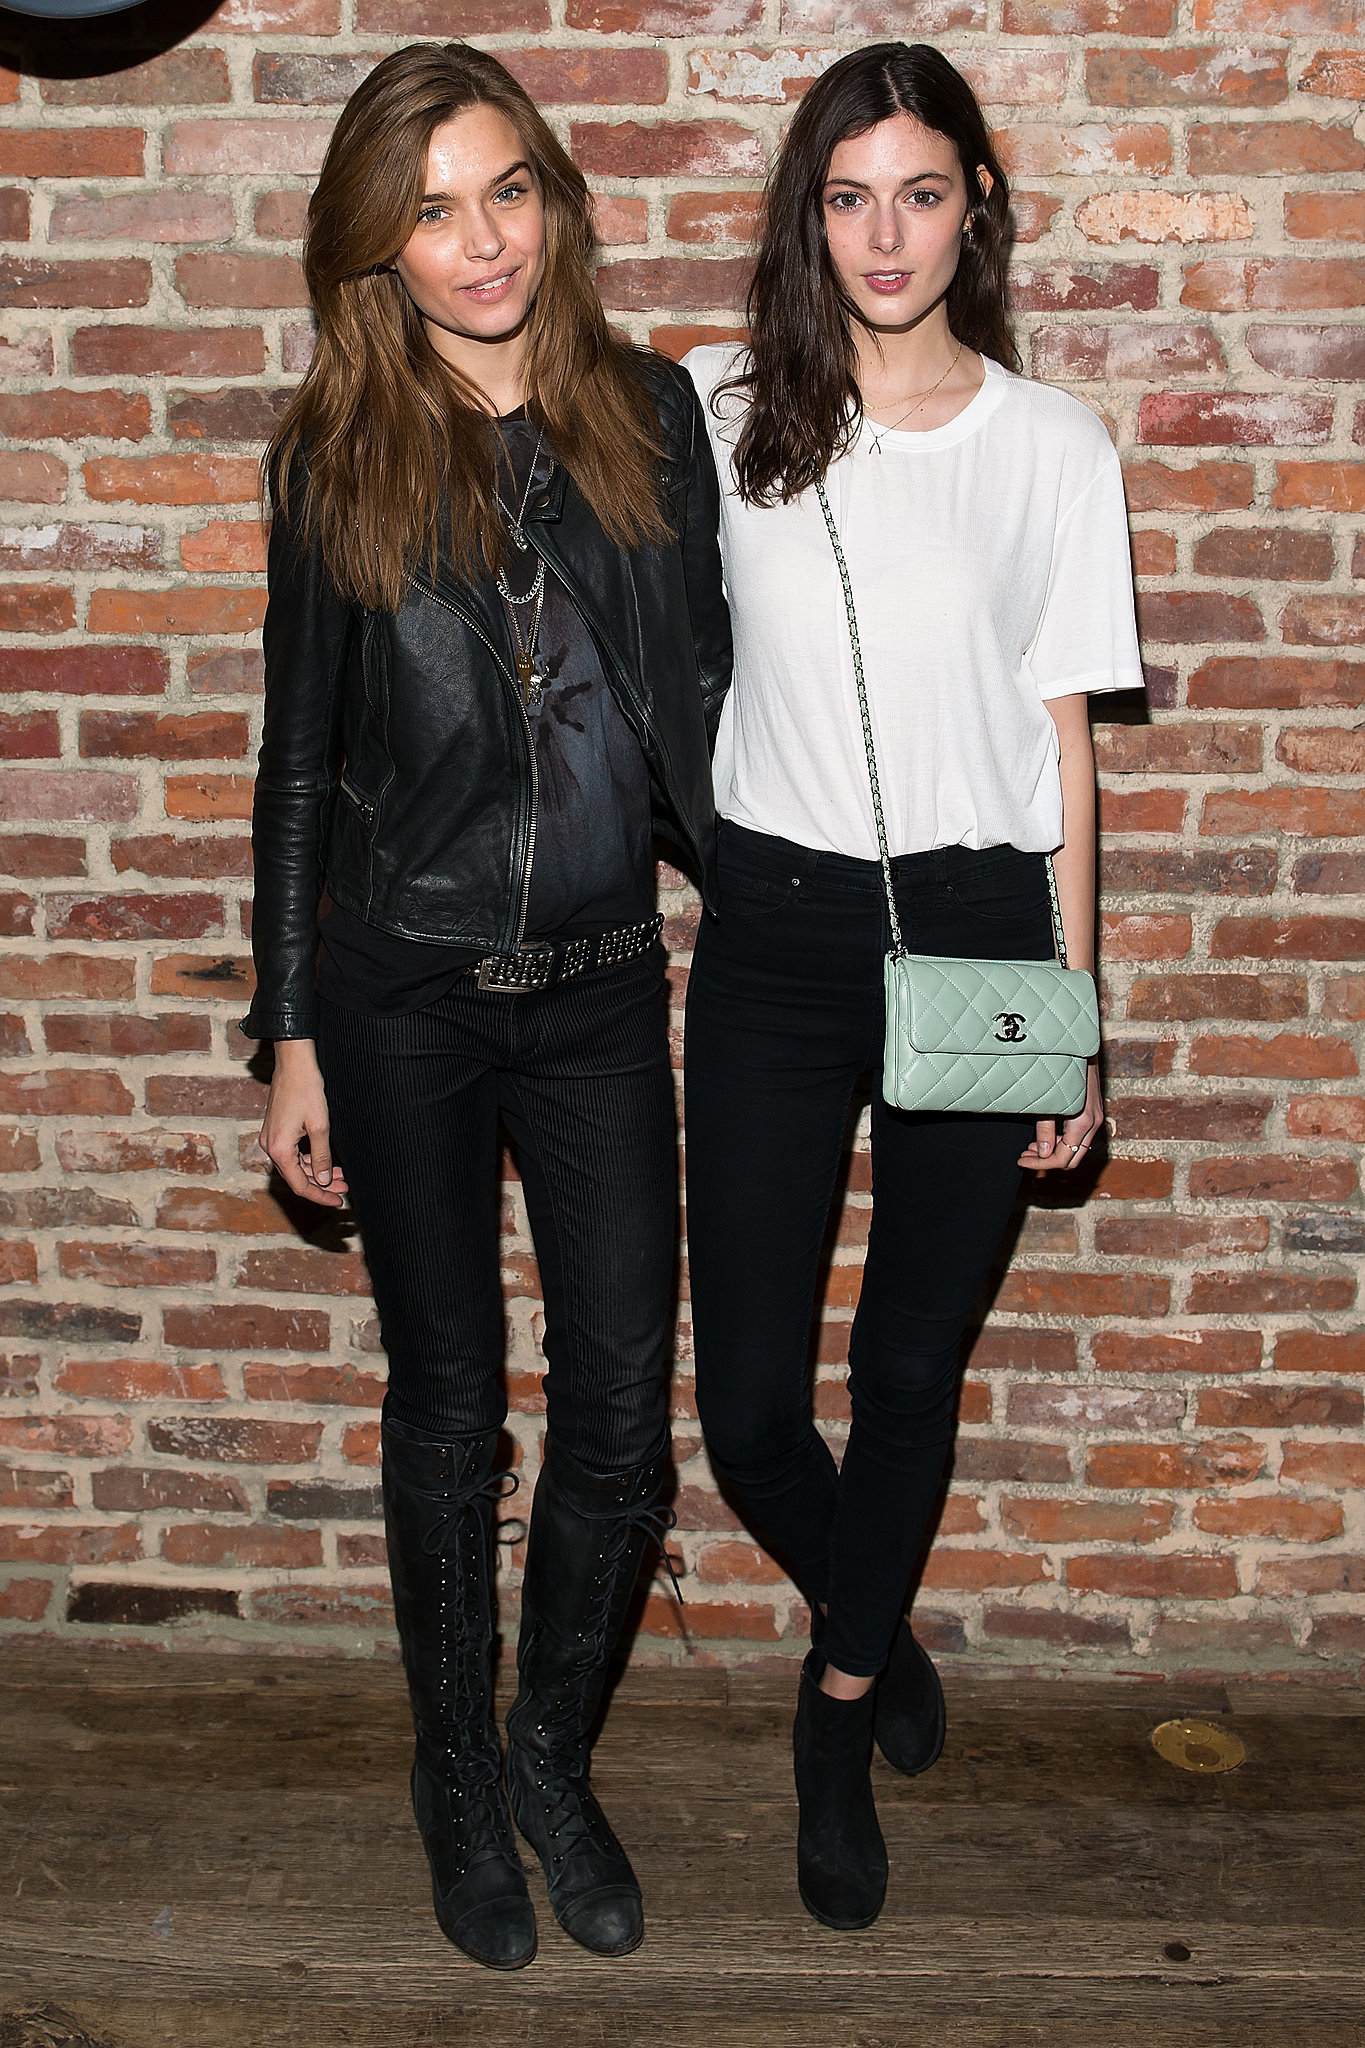 Josephine Skriver and Sadie Newman at Modelinia's pre-Fashion Week dinner in New York.